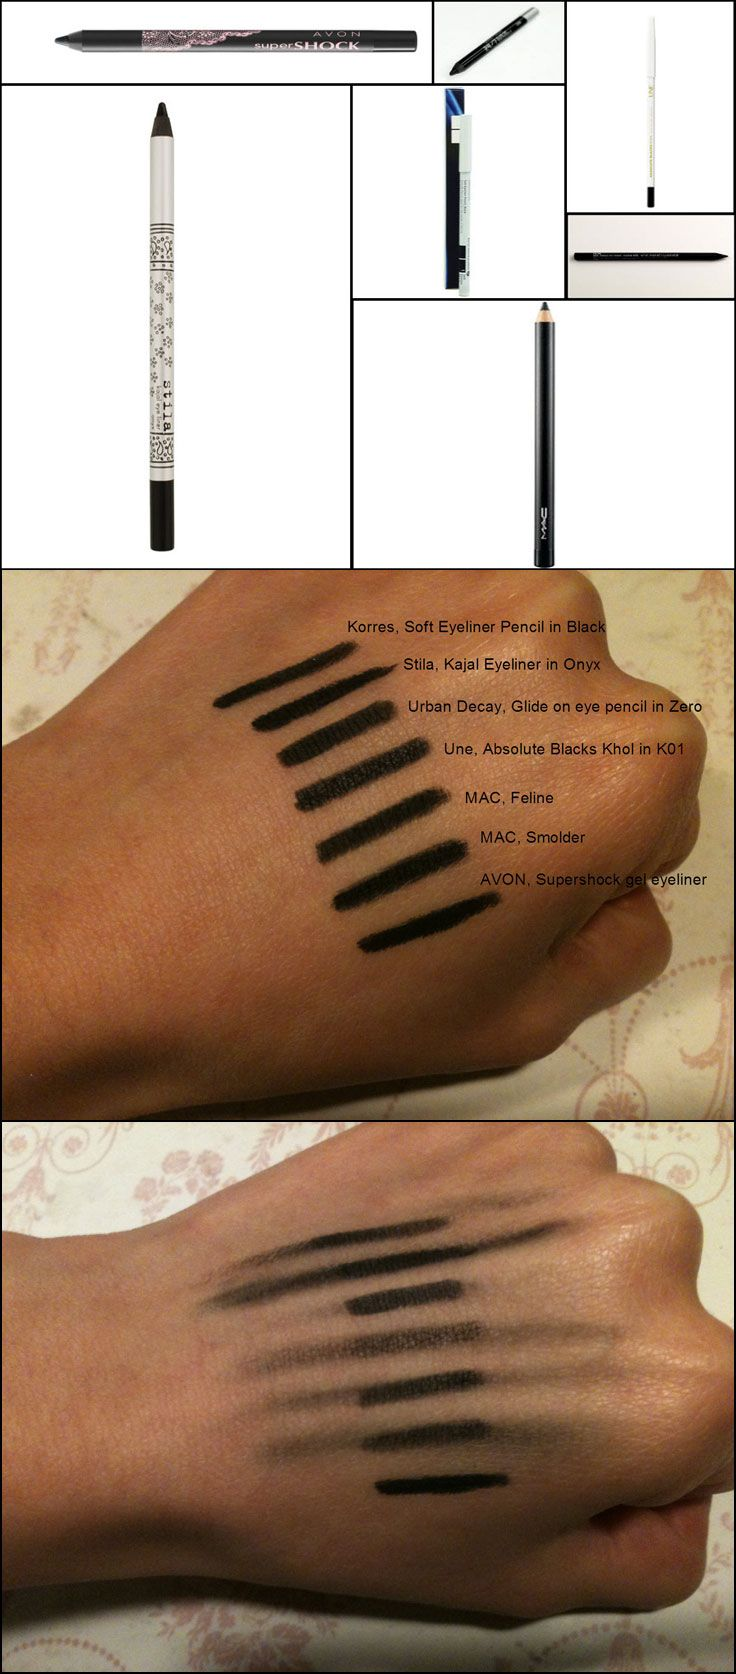 COMPARISON / SWATCHES :: Best Black Eye Khols / Eyeliner Pencils :: BLACKEST = Stila kajal in Onyx, MAC Smolder, Avon Supershock gel eyeliner in Black... BEST SMUDGING (4 smoky looks) = Korres soft eyeliner pencil in black (01), Stila kajal in Onyx, Une Absolute Blacks Khol in K01 (softer look)... SMUDGEPROOF (staying power) = Urban Decay glide on eye pencil in Zero, Avon Supershock in Black... SOFTEST KHOL = Stila, MAC Feline or Avon! | #eyekhol #blackeyeliner #eyelinerpencil…